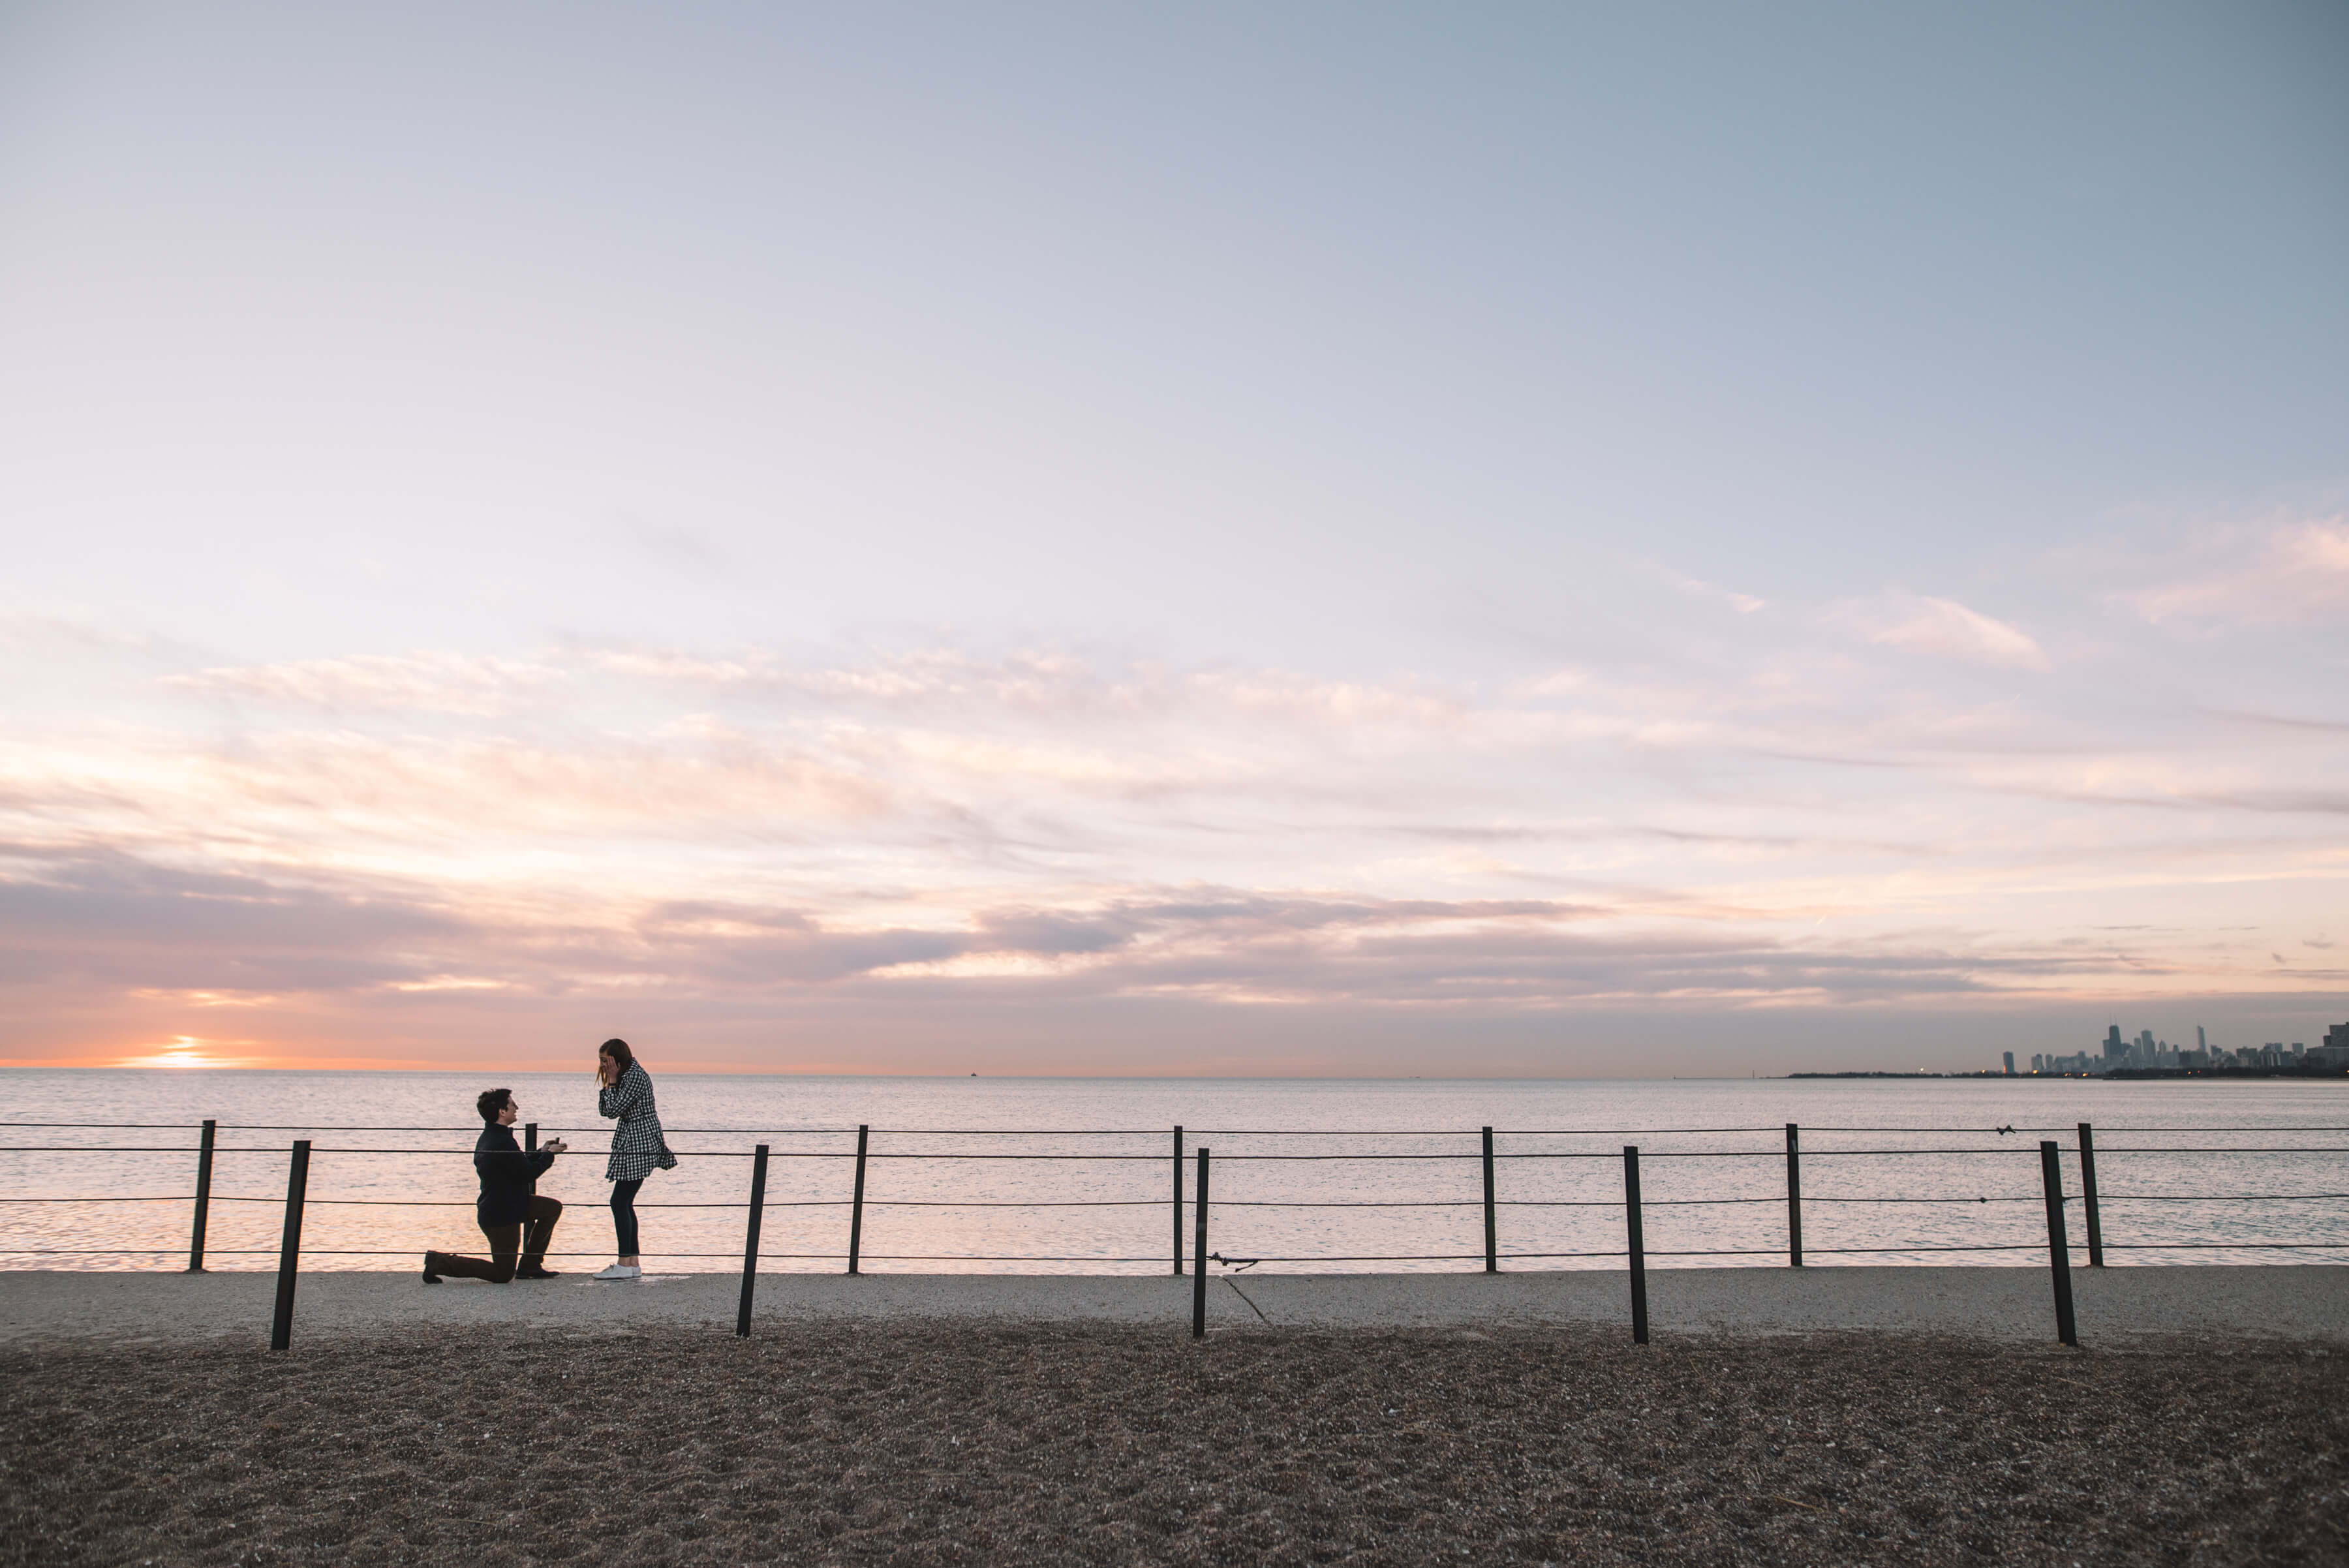 Man proposing to his partner at sunset with the ocean and downtown Chicago in the background